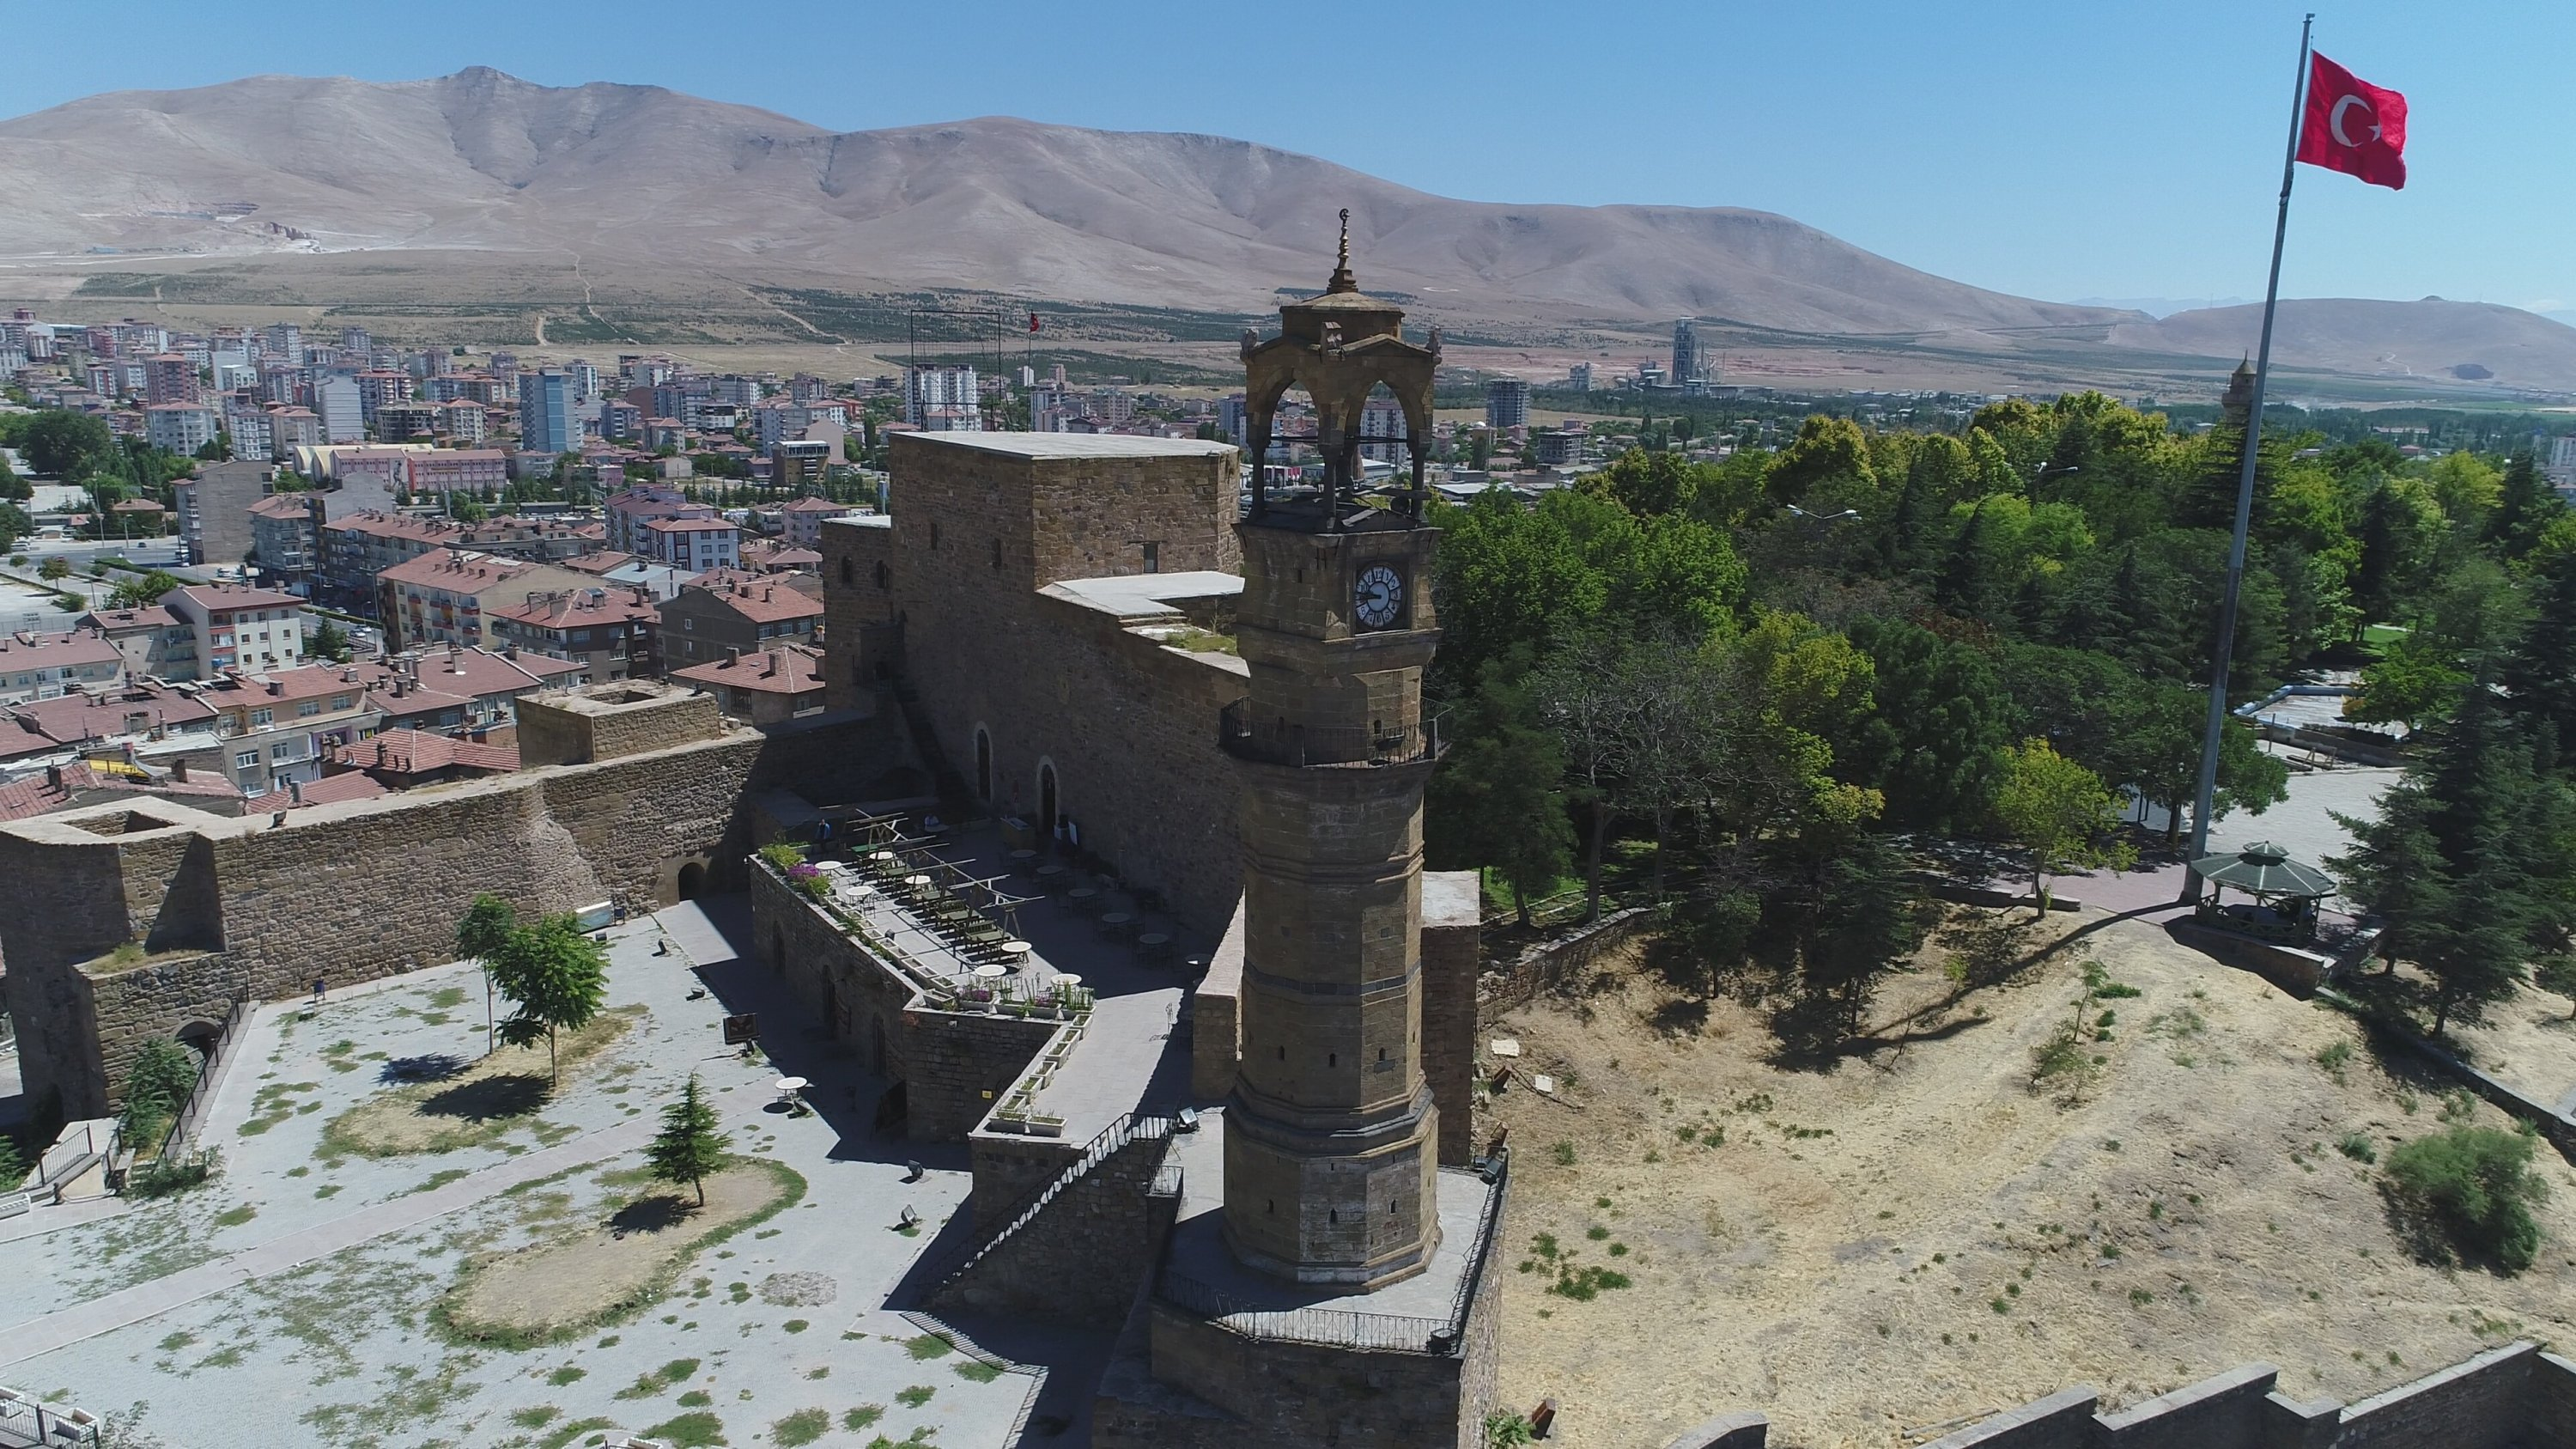 The clock tower in central Niğde province was built on the order of writer and administrator Ziya Pasha, Turkey, Aug. 24, 2020. (AA Photo)